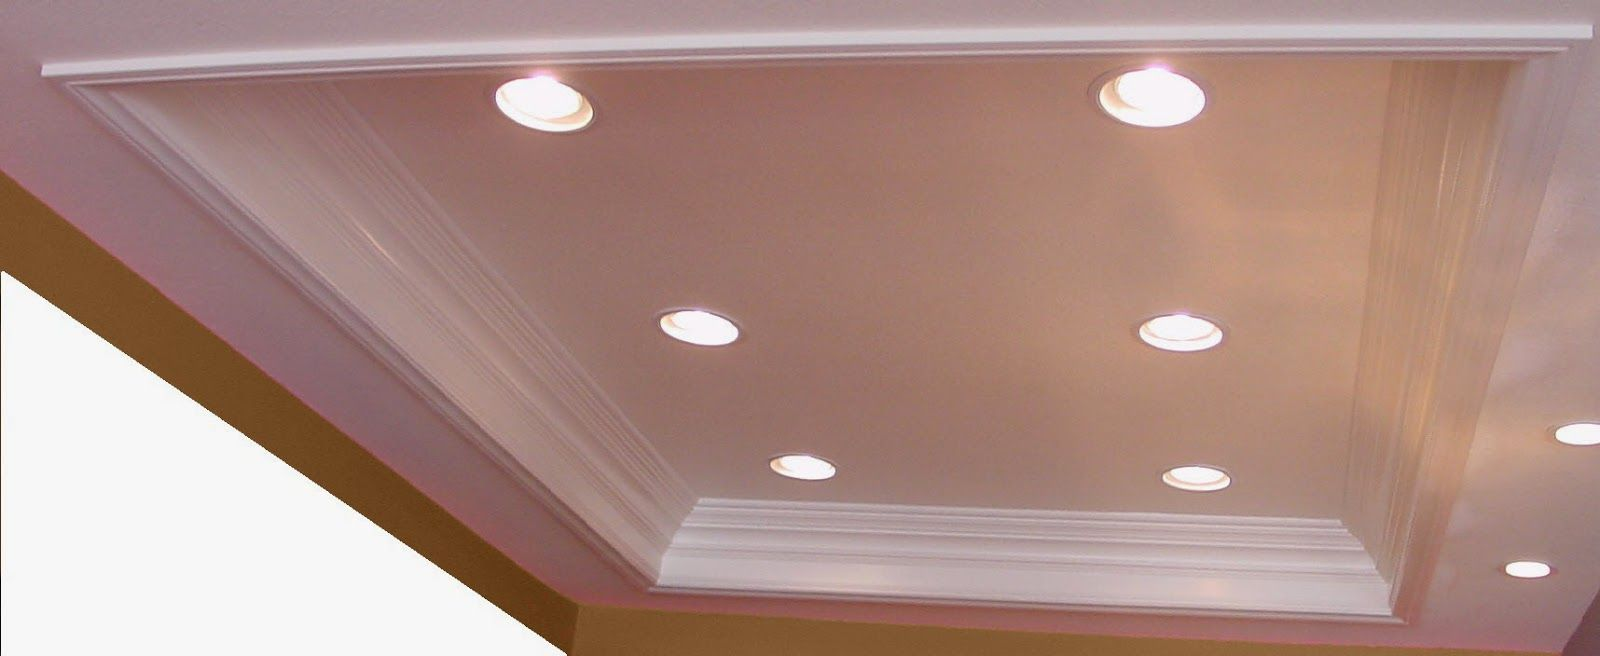 led recessed lighting layout guide different decor on home gallery